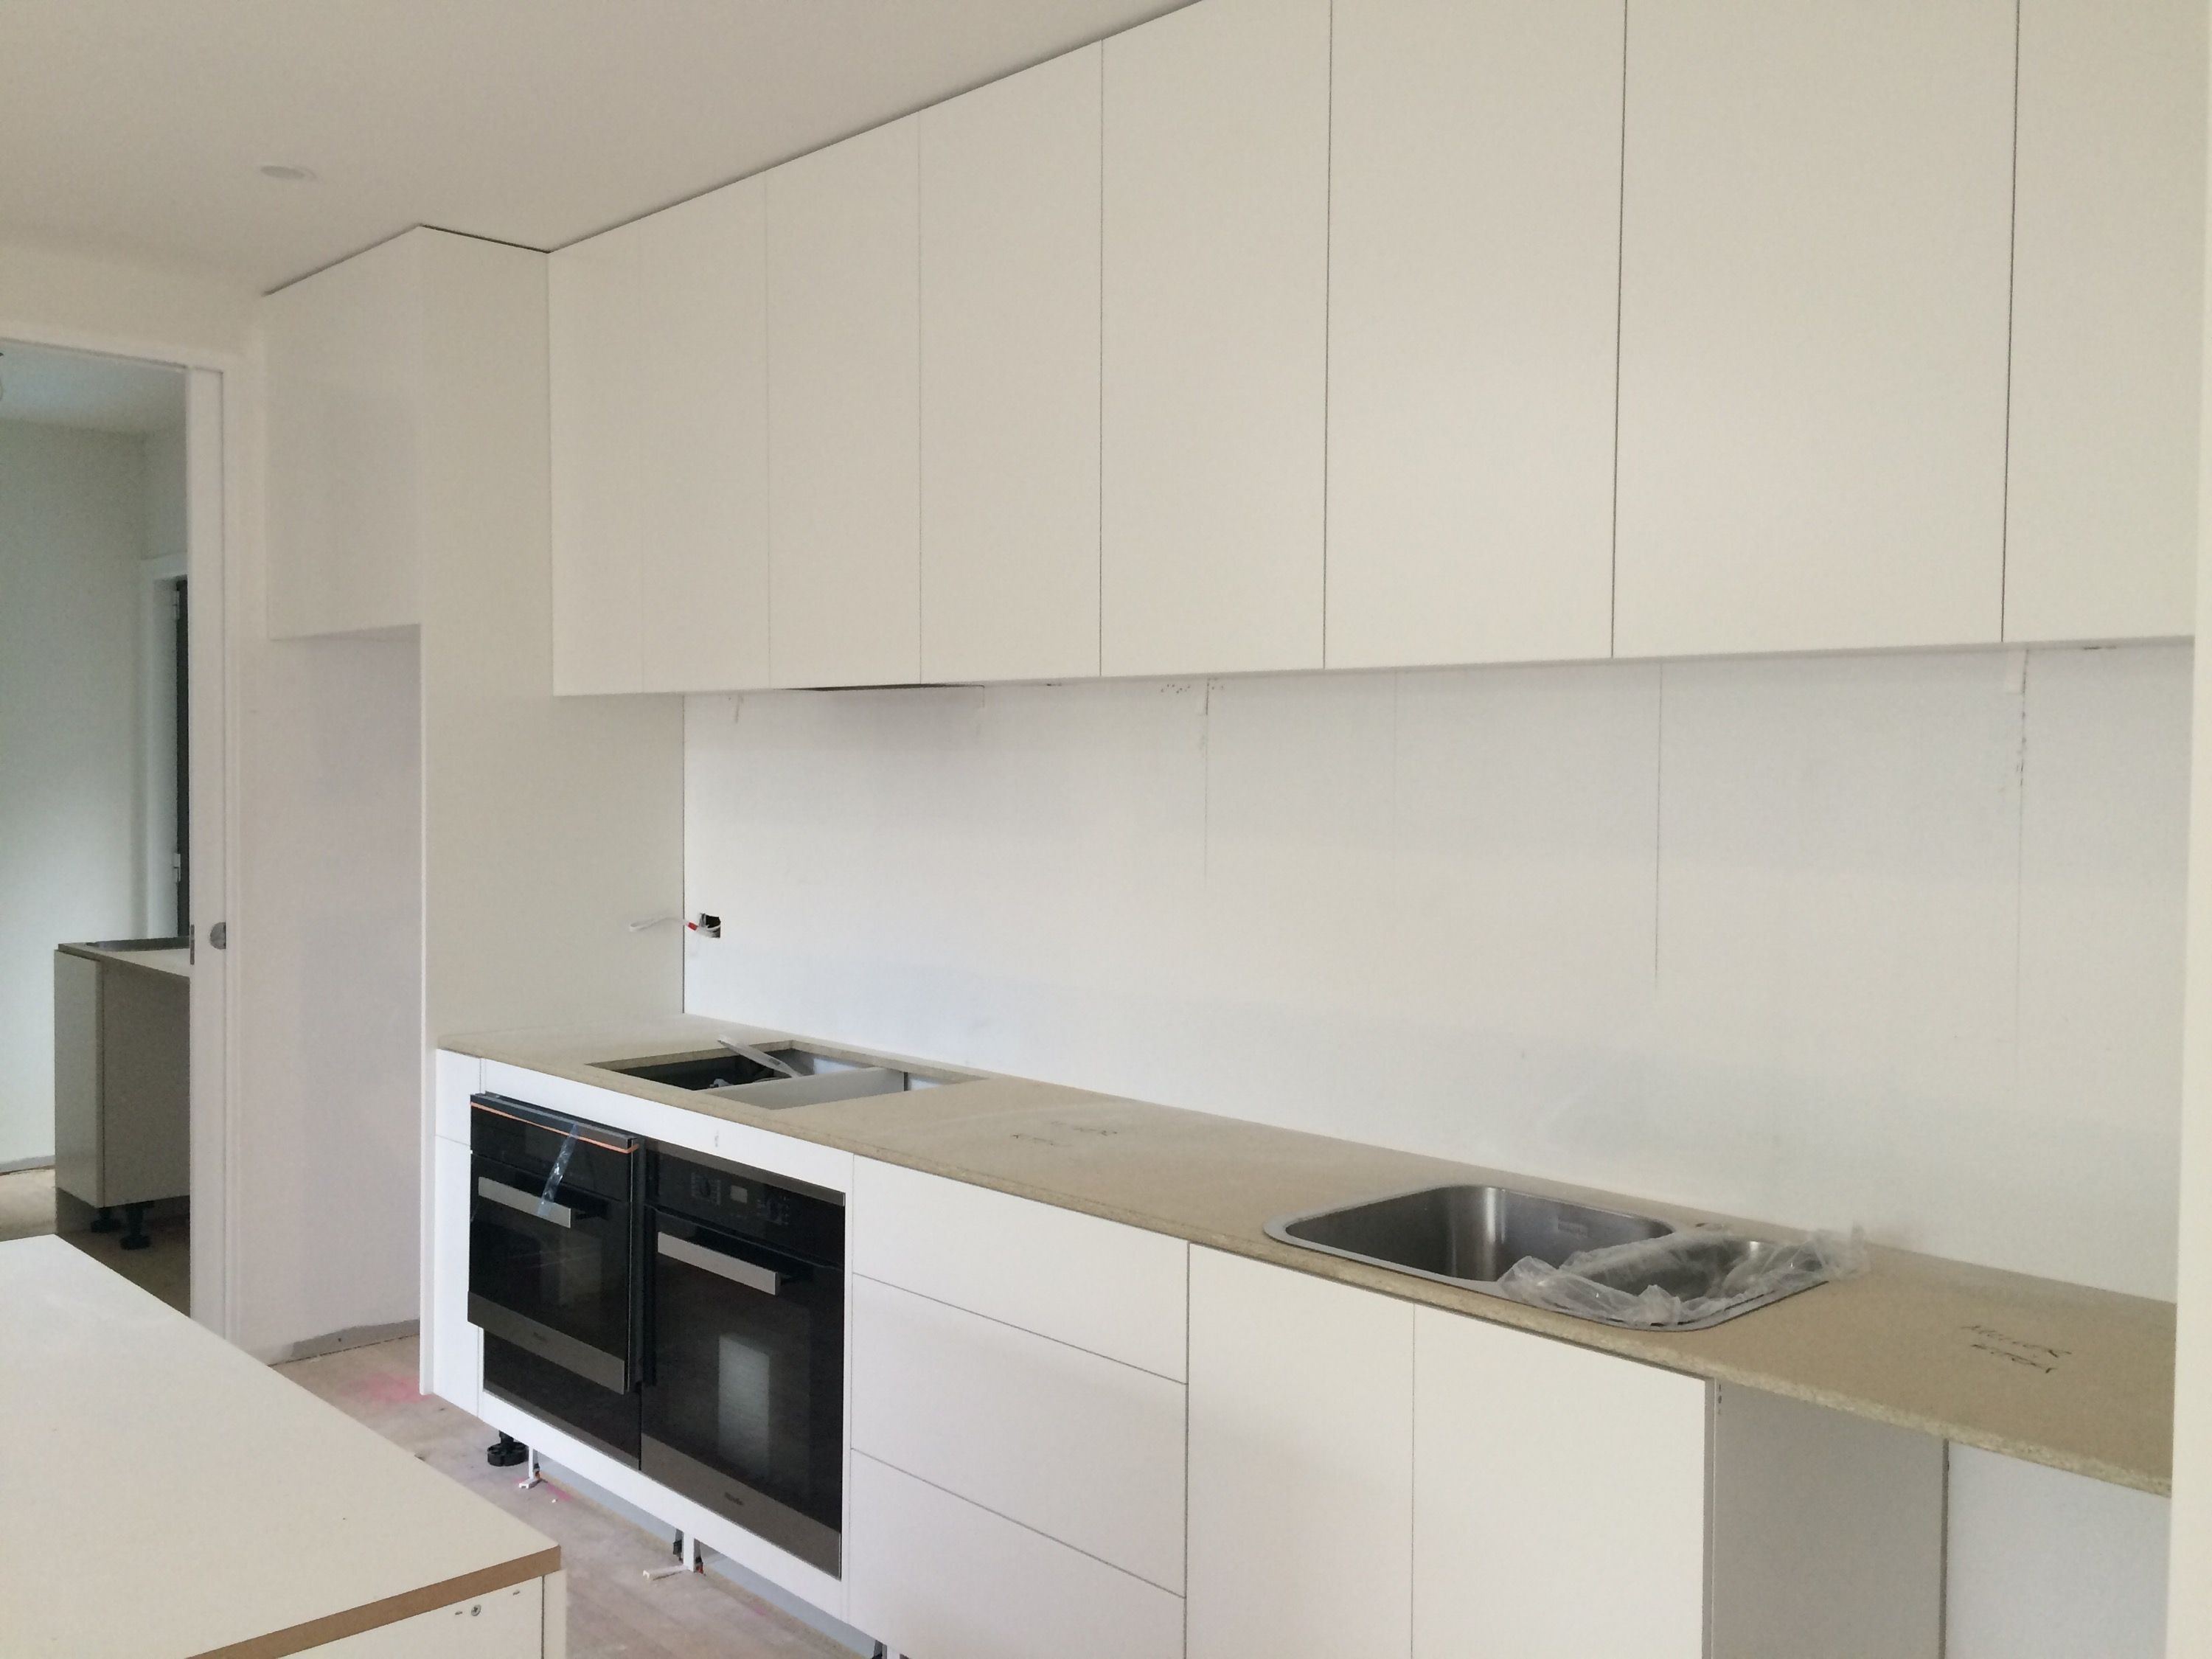 Old Kitchen Cabinets Without Handles